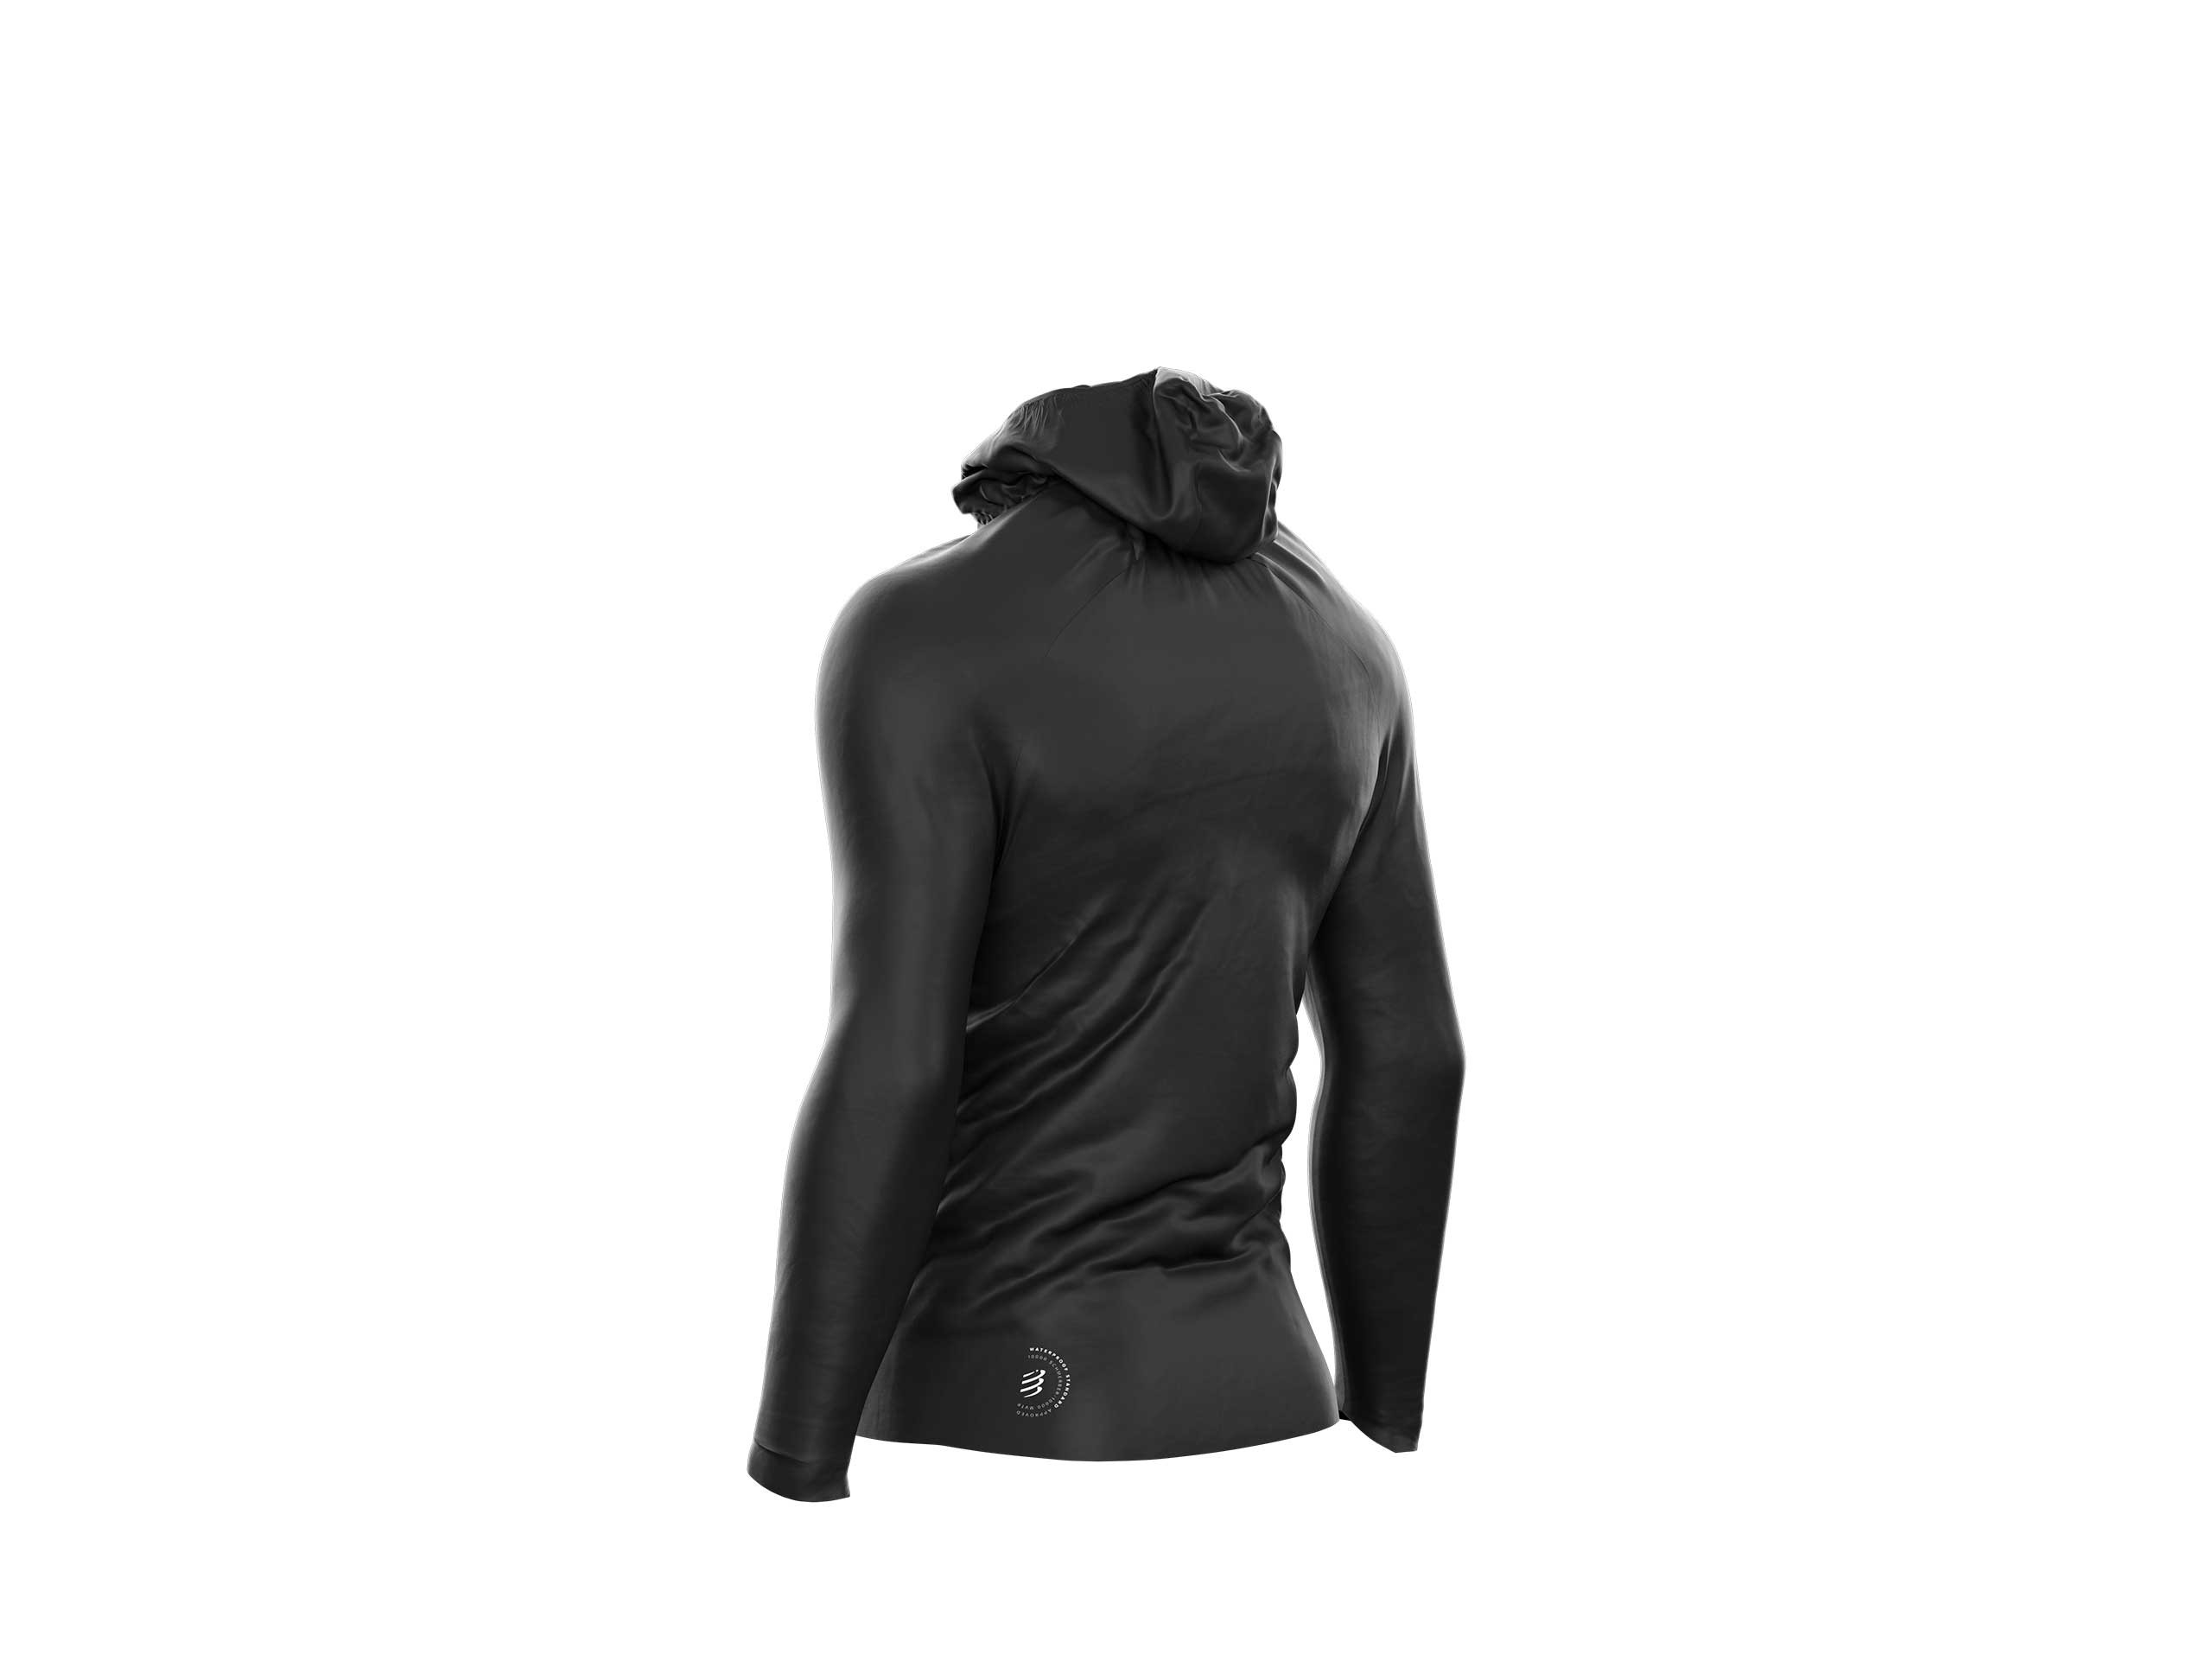 Chaqueta Hurricane Waterproof 10/10 negra